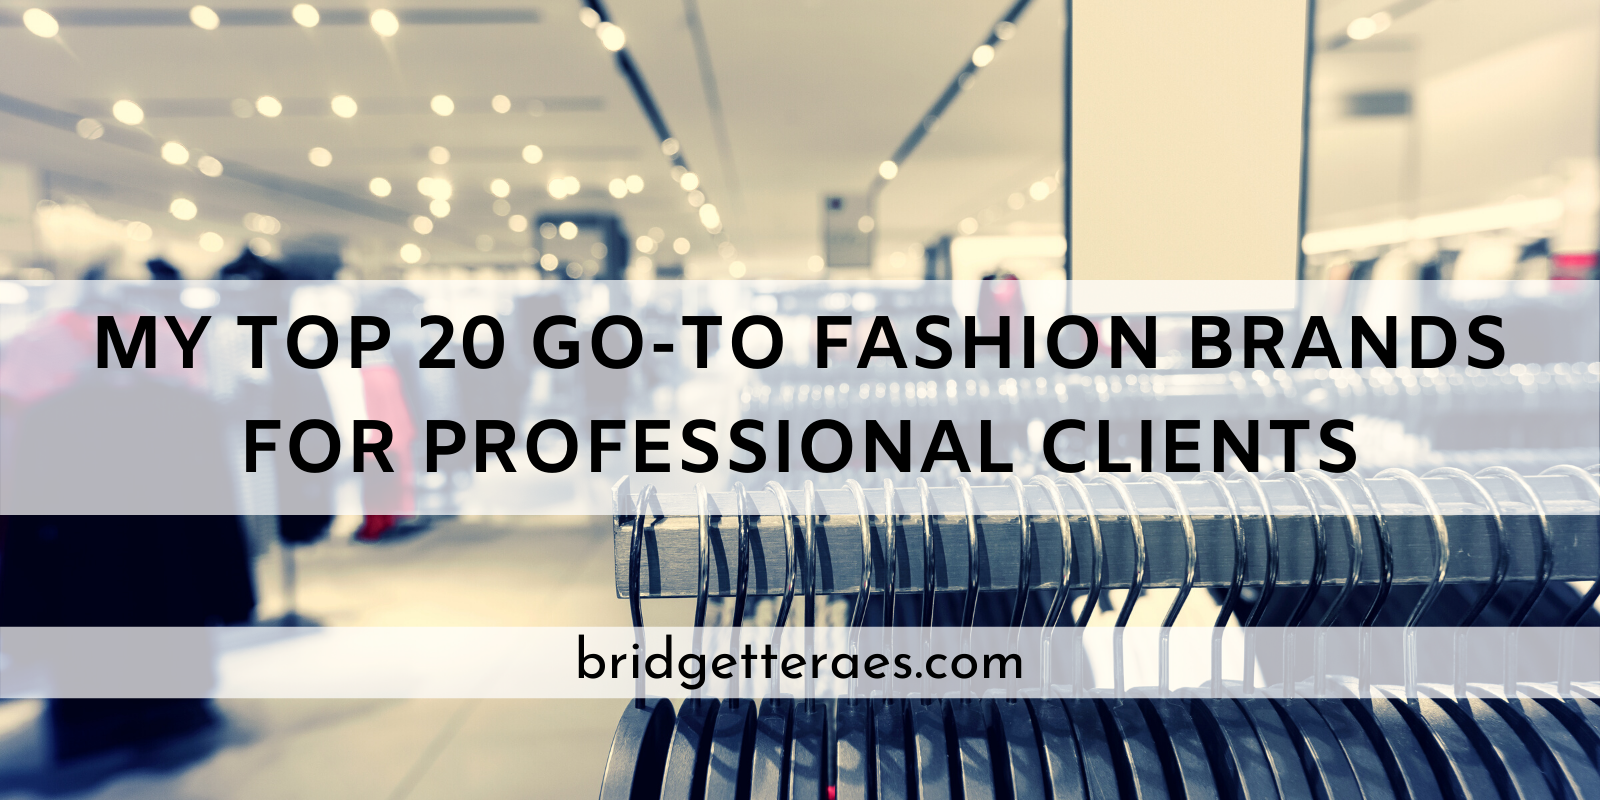 My Top 20 Go-To Fashion Brands for Professional Clients